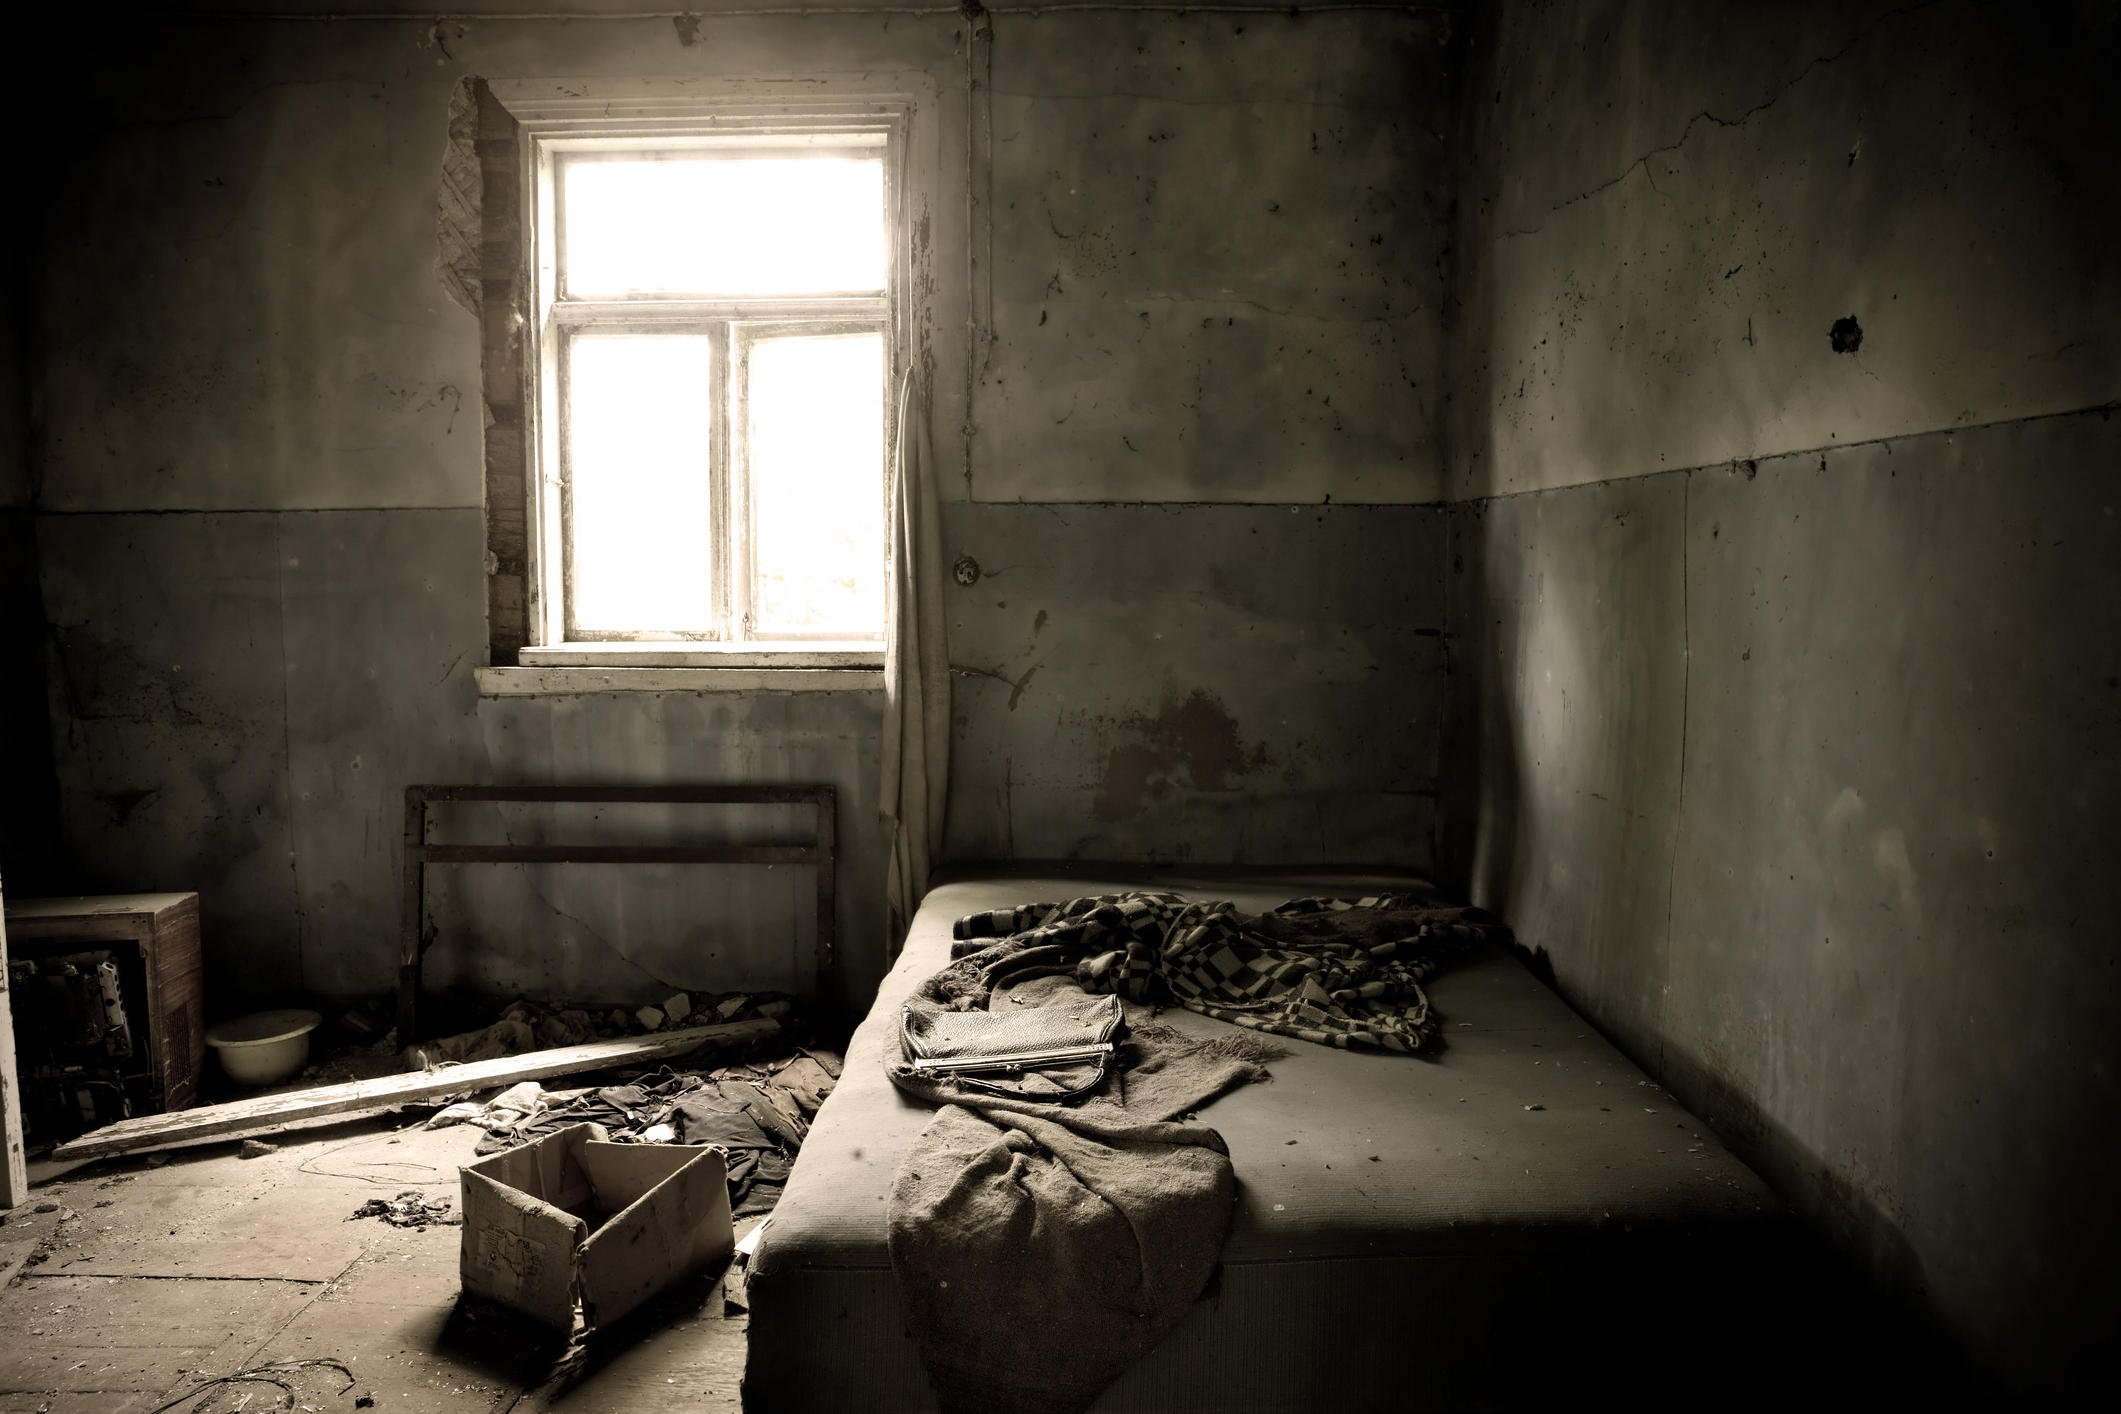 A dark moldy old abandoned bedroom